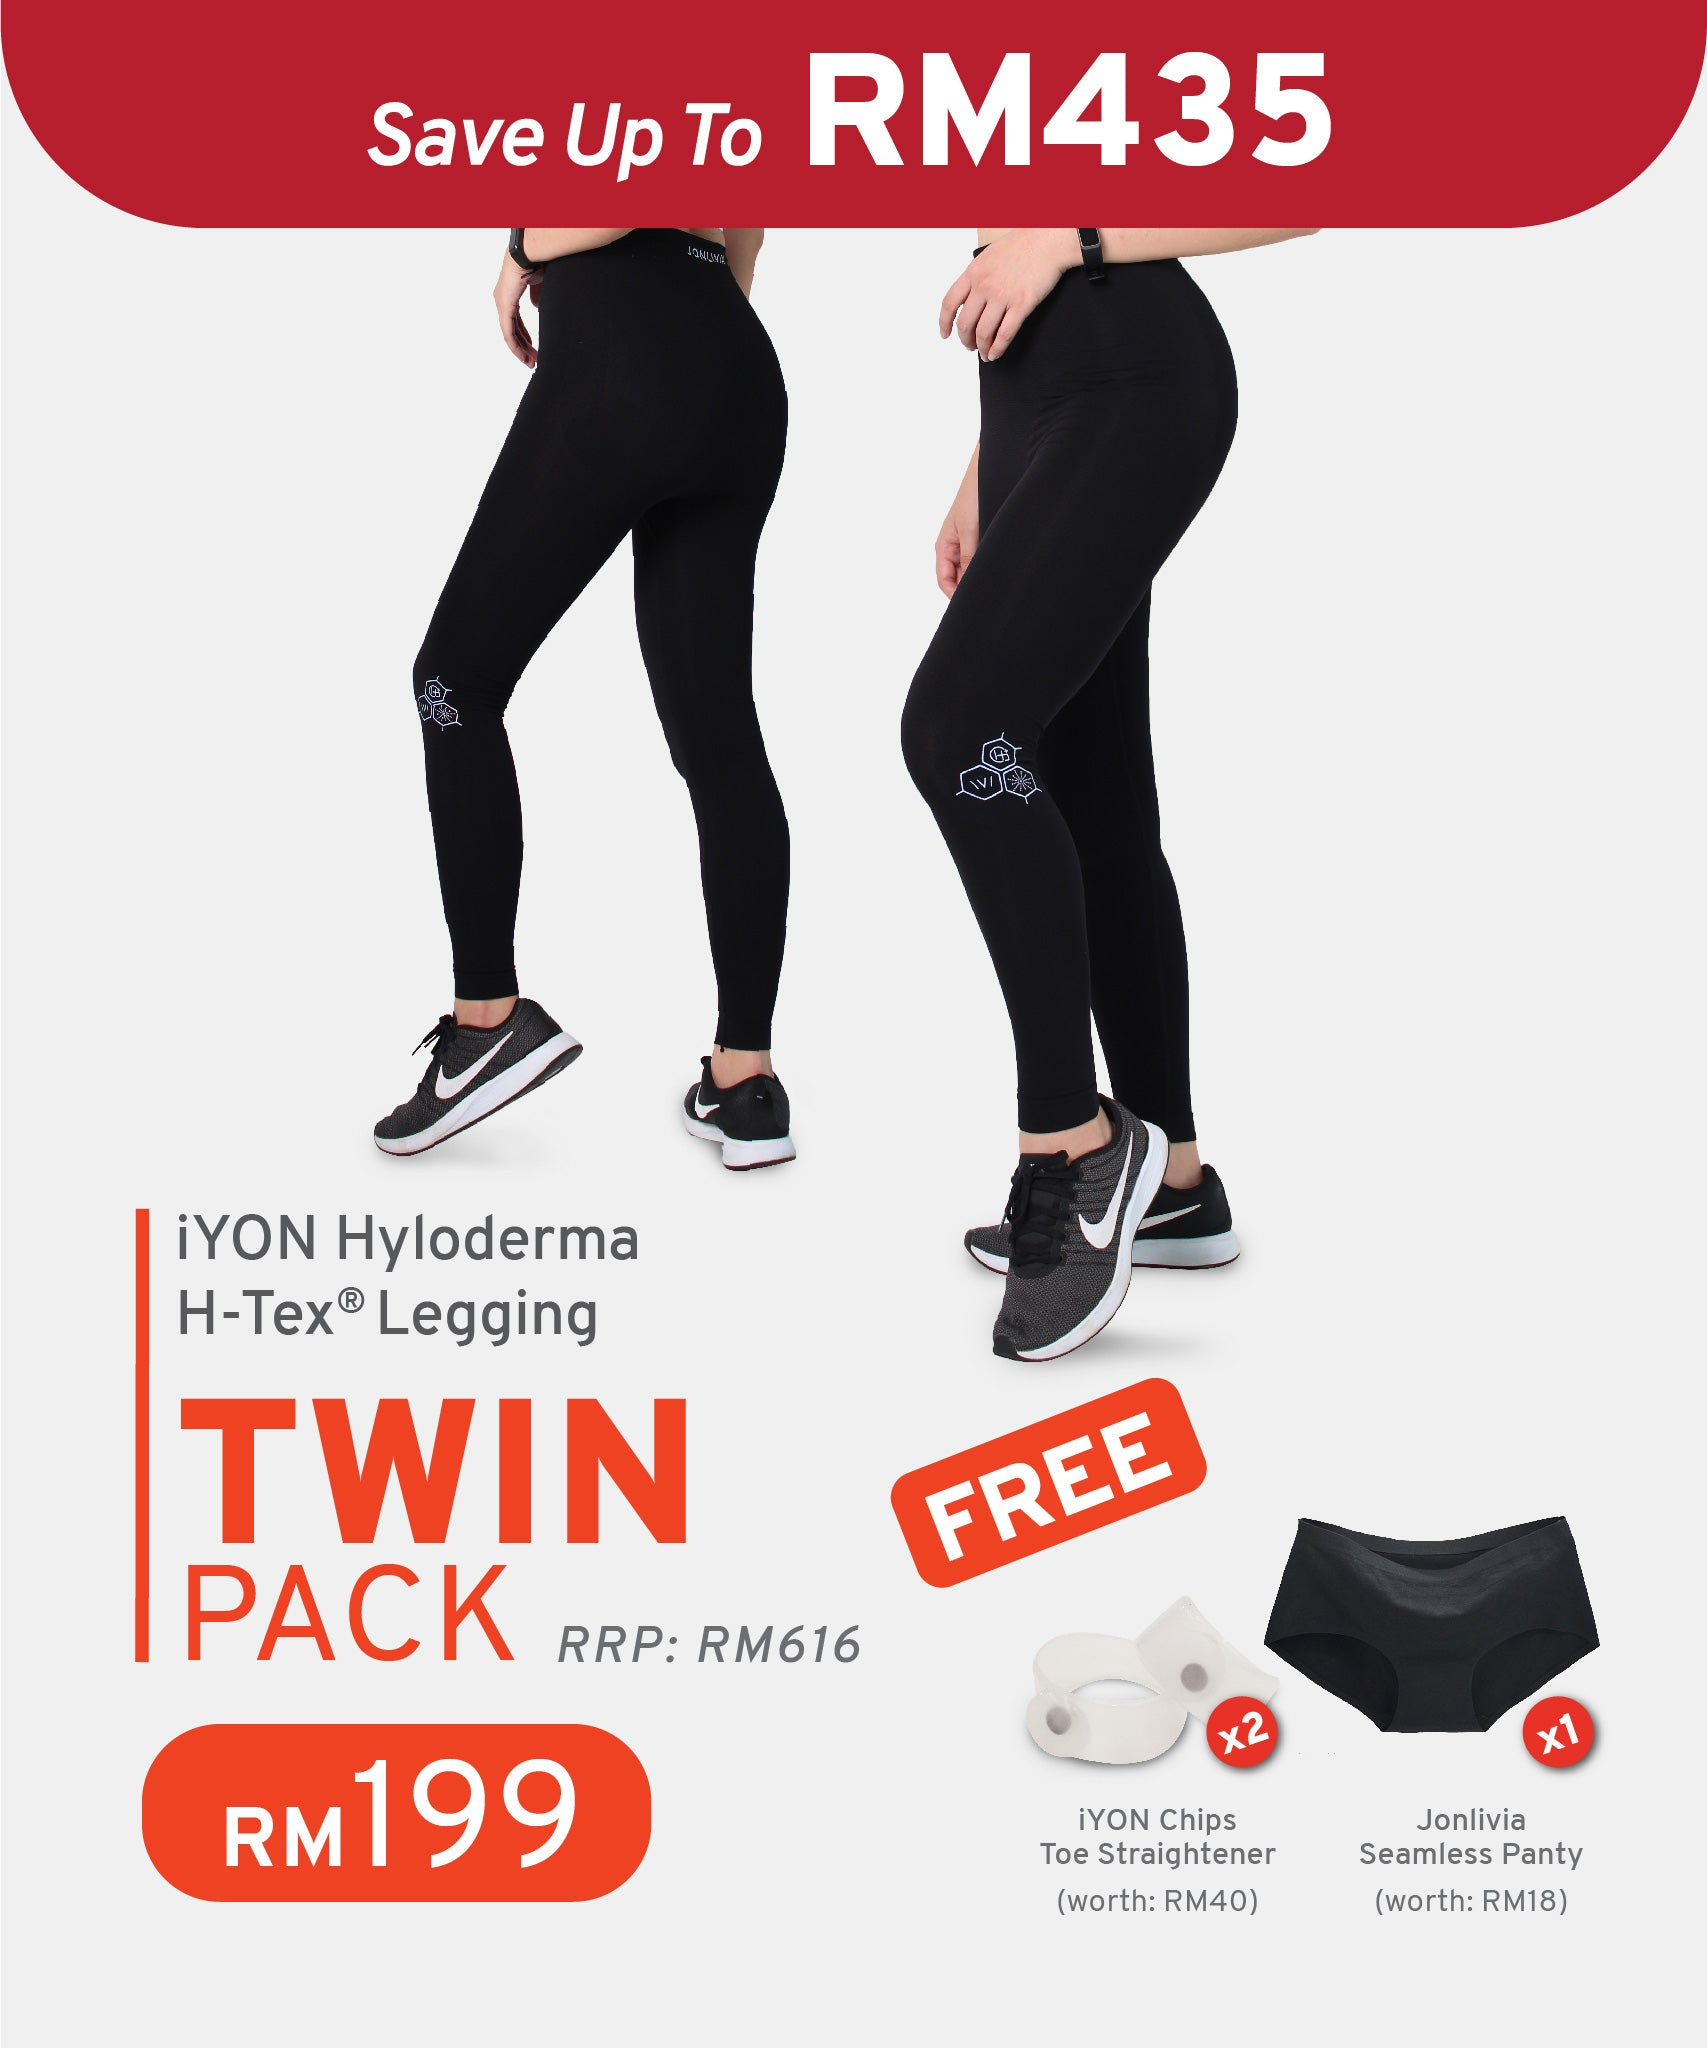 [PRE-ORDER] TWIN PACK iYON HyloDerma H-Tex® Leggings